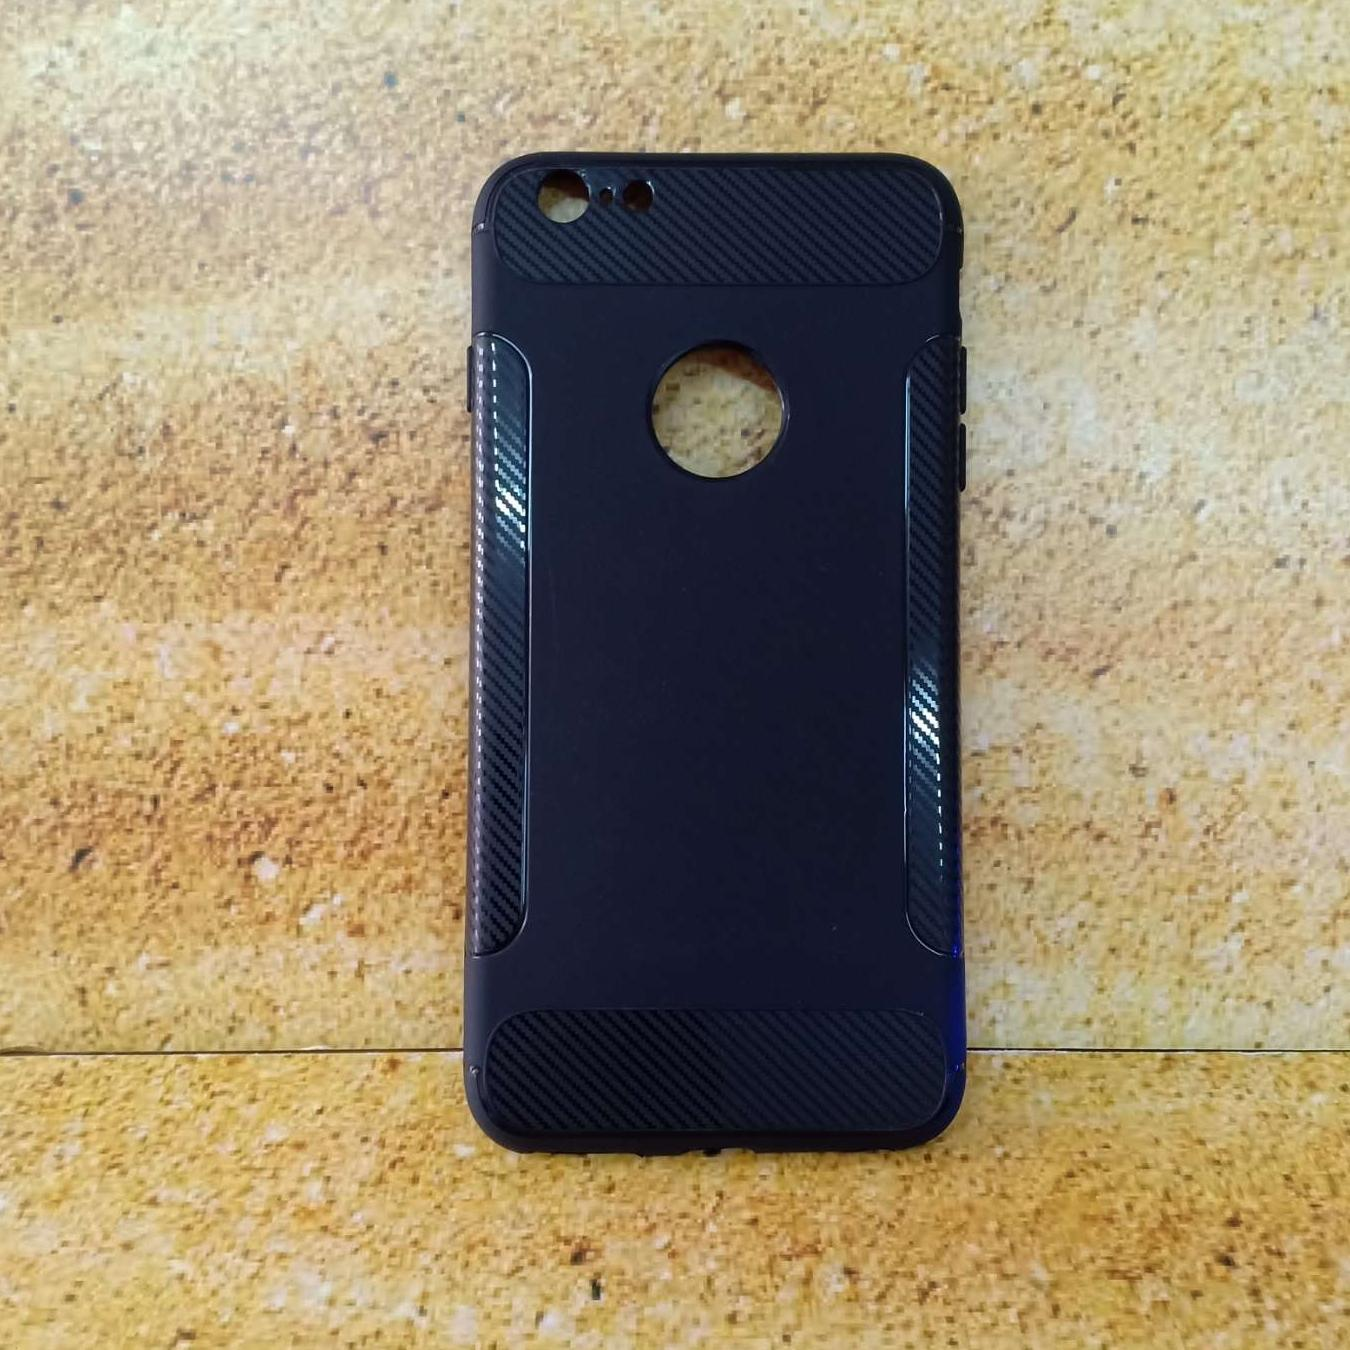 SOFTCASE IPAKY CARBON IPHONE 6 PLUS / SLIM CASE CARBON FIBERWING